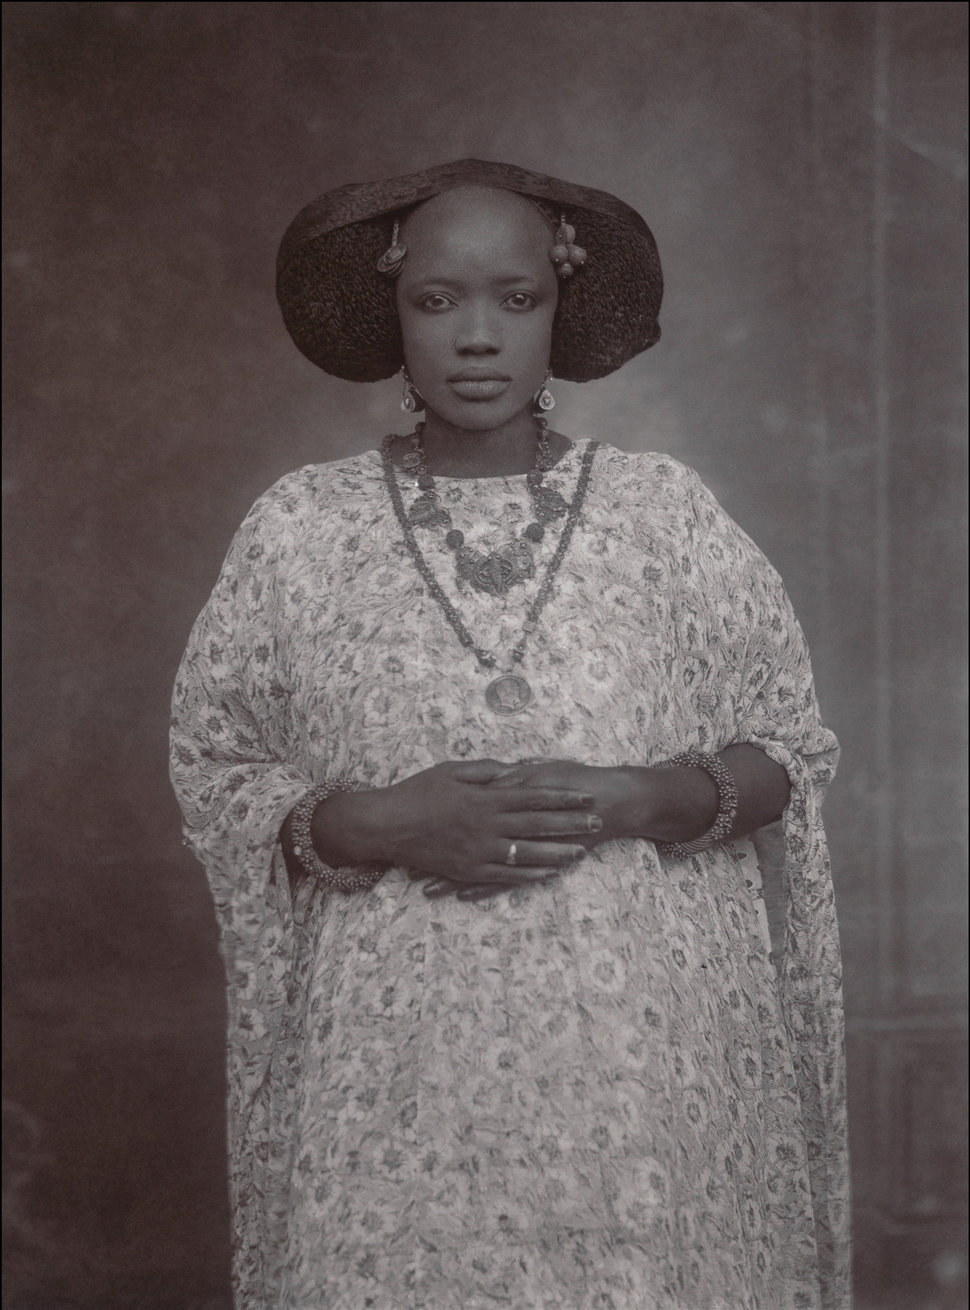 Portrait of a Woman, Senegal circa 1910 via The Met